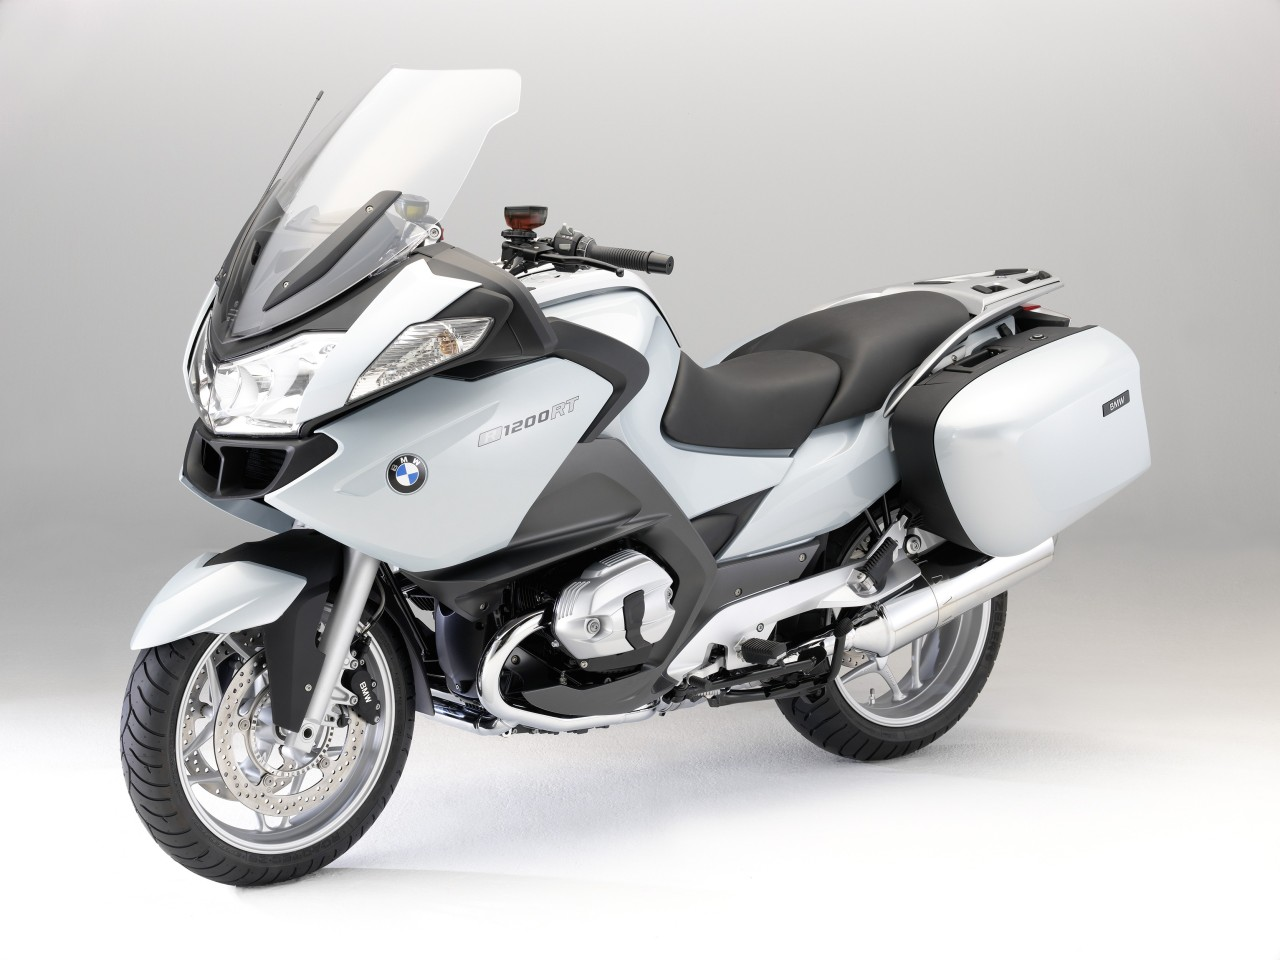 bmw r 1200 rt specs 2007 2008 autoevolution. Black Bedroom Furniture Sets. Home Design Ideas